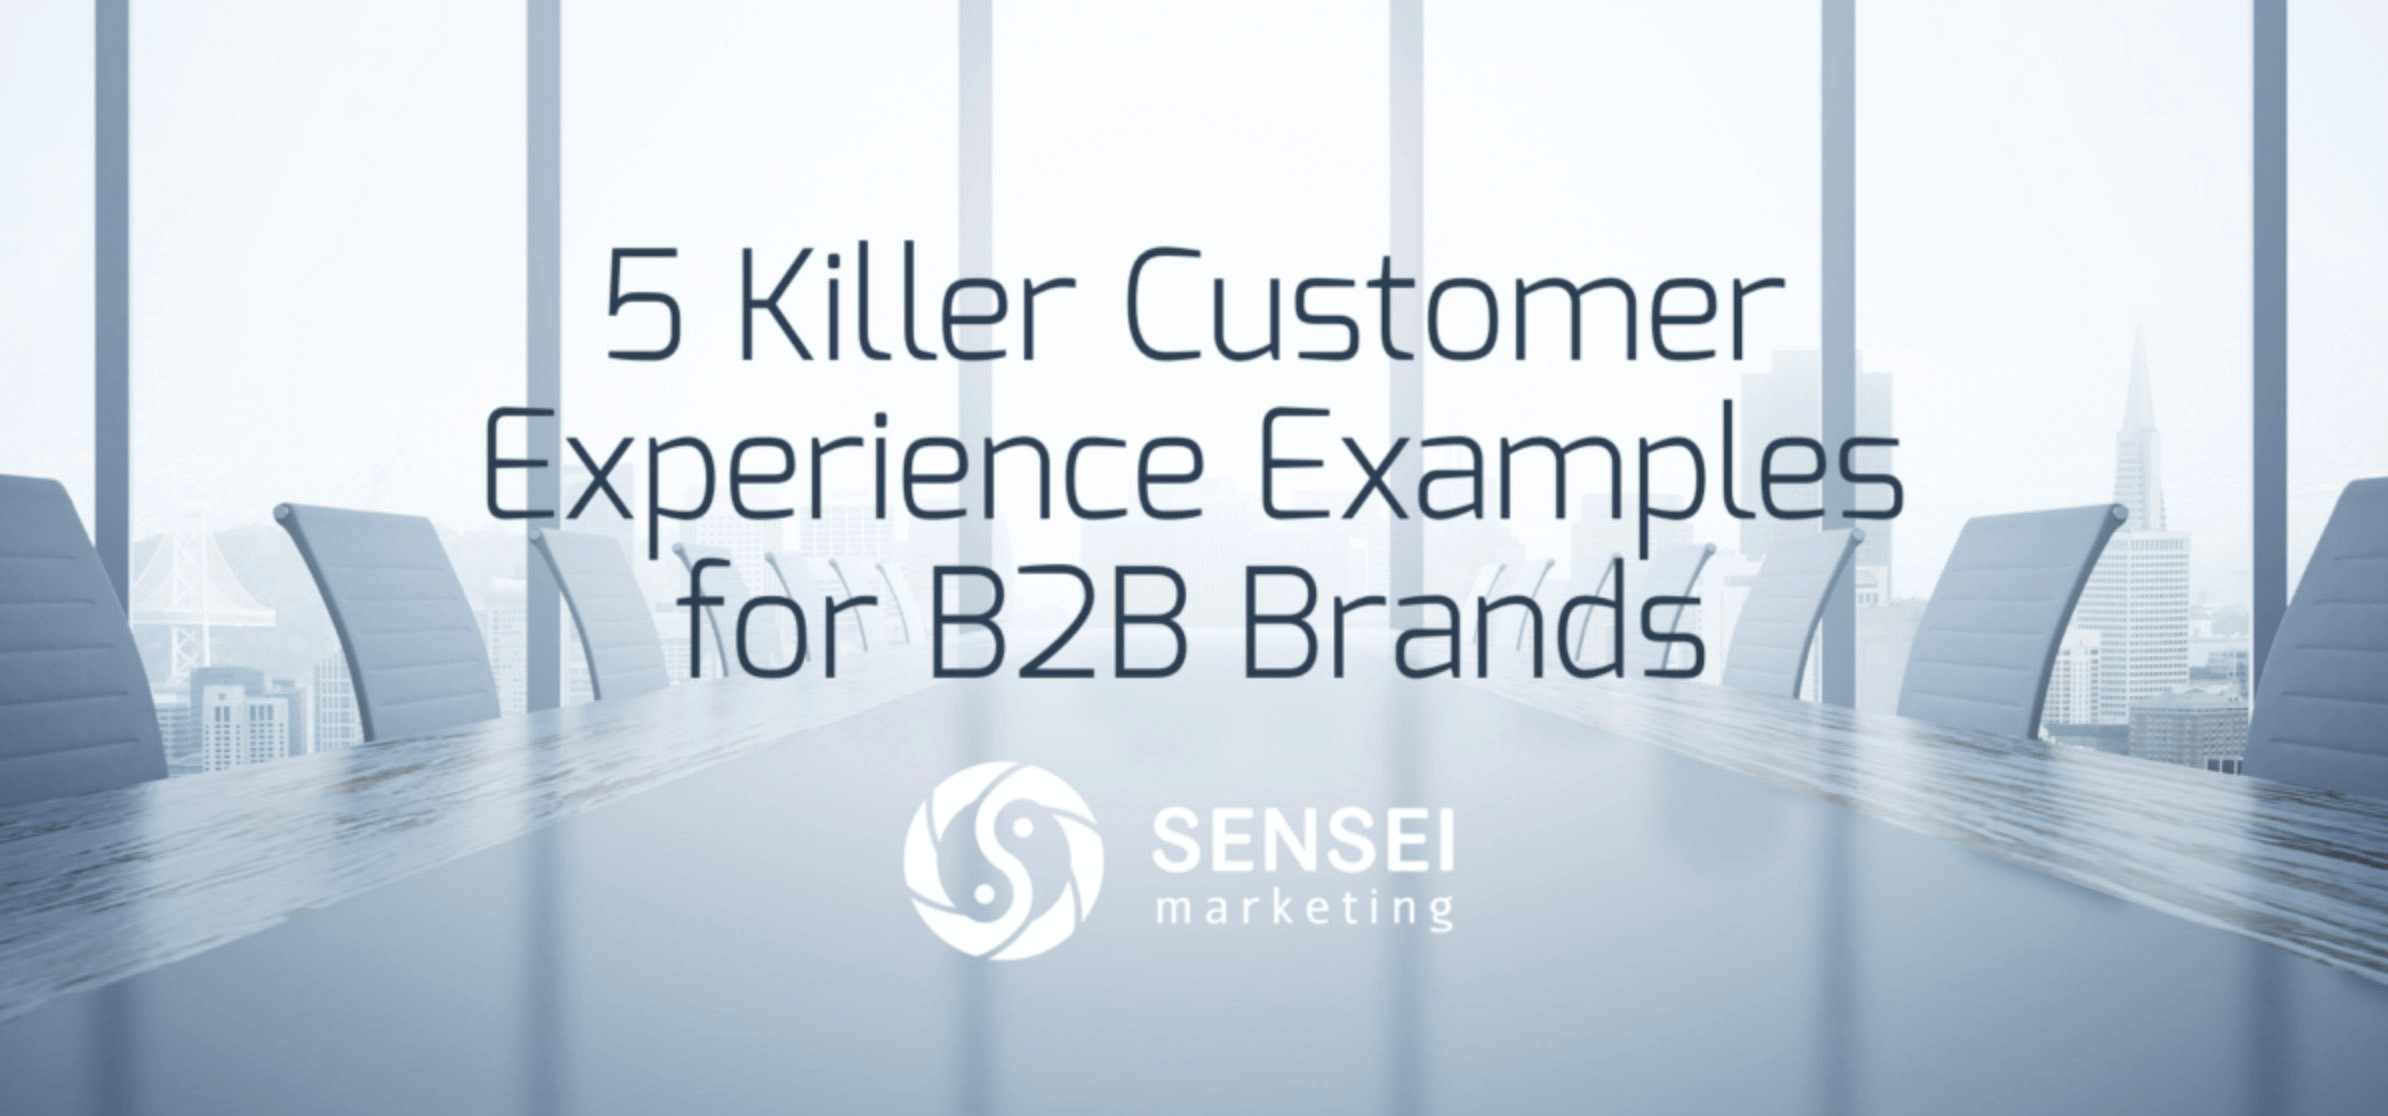 5 Killer Customer Experience Examples for B2B Brands copy